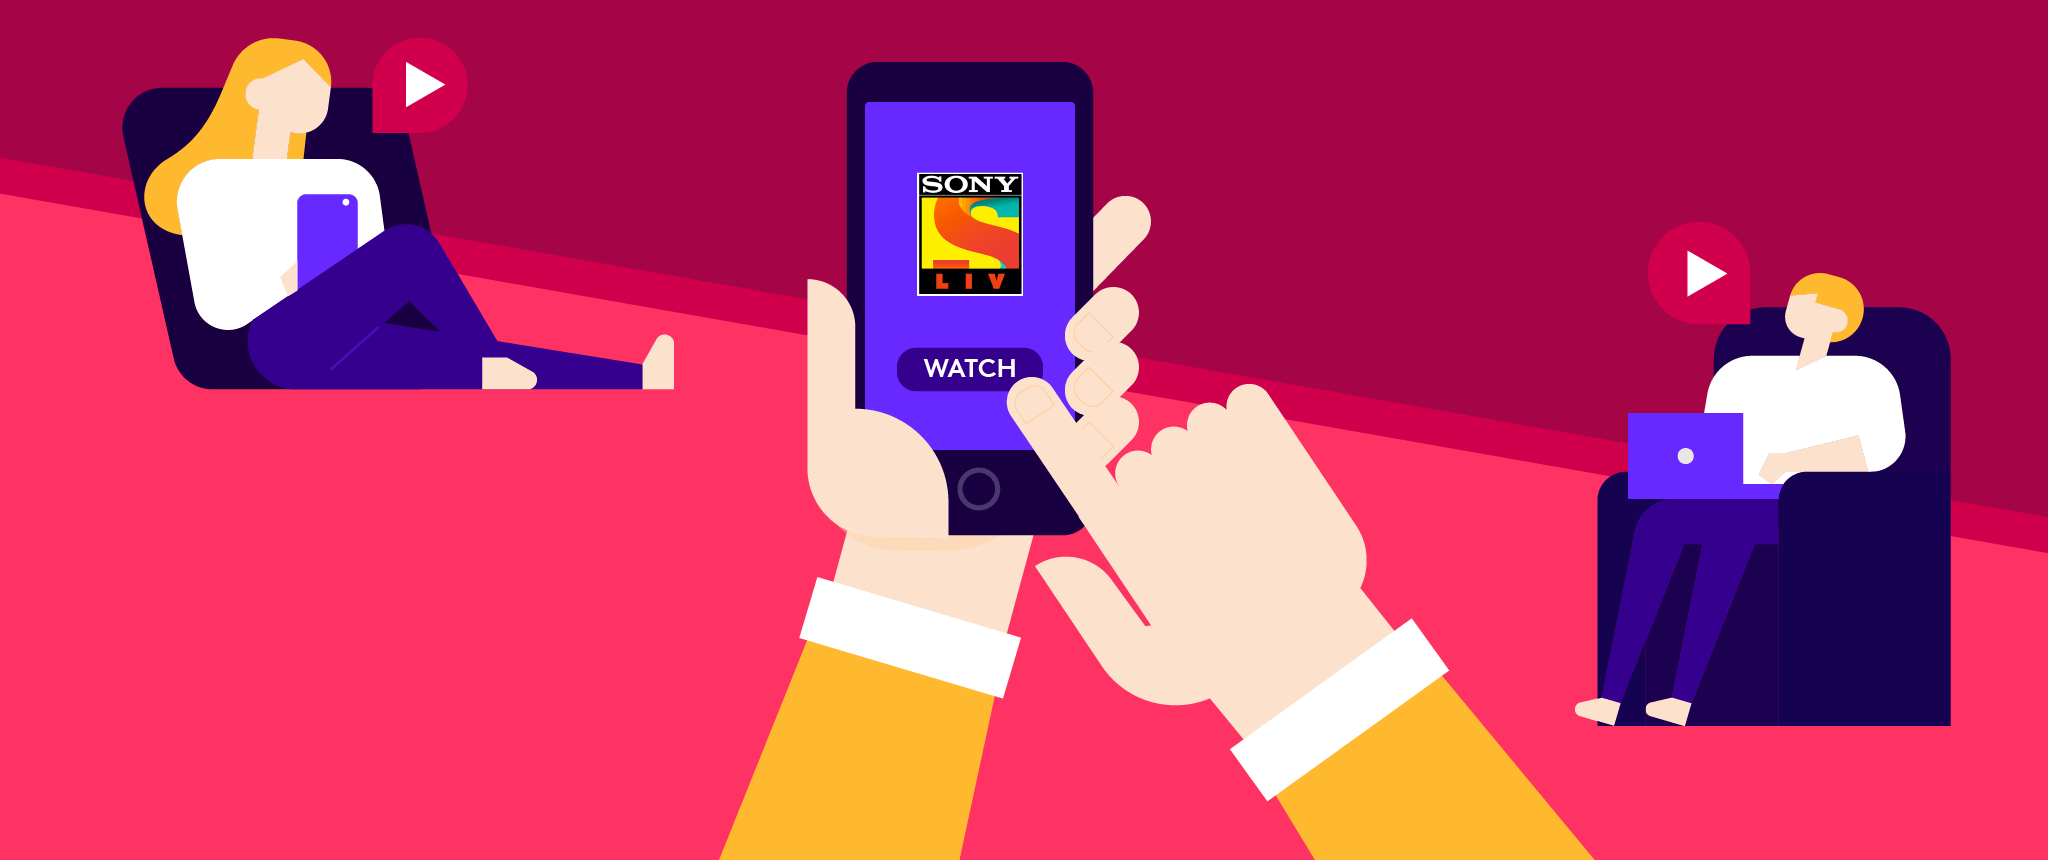 How SonyLIV Converted the Art of Personalized Mobile Marketing into User Engagement Science